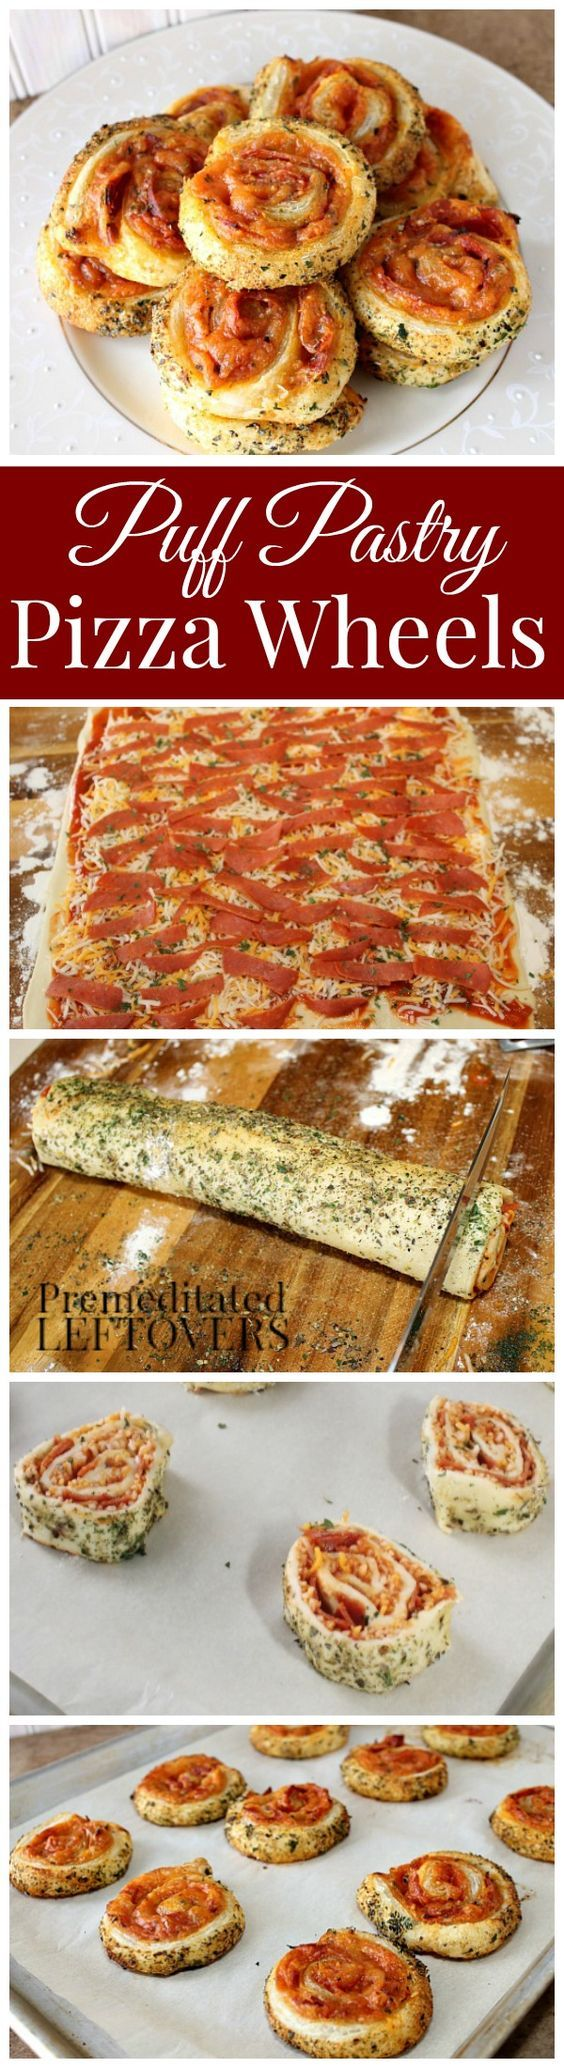 Puff Pastry Pizza Wheels Recipe: This quick and easy appetizer recipe is a tasty snack for parties. Add your favorite pizza toppings to the pizza wheel.: